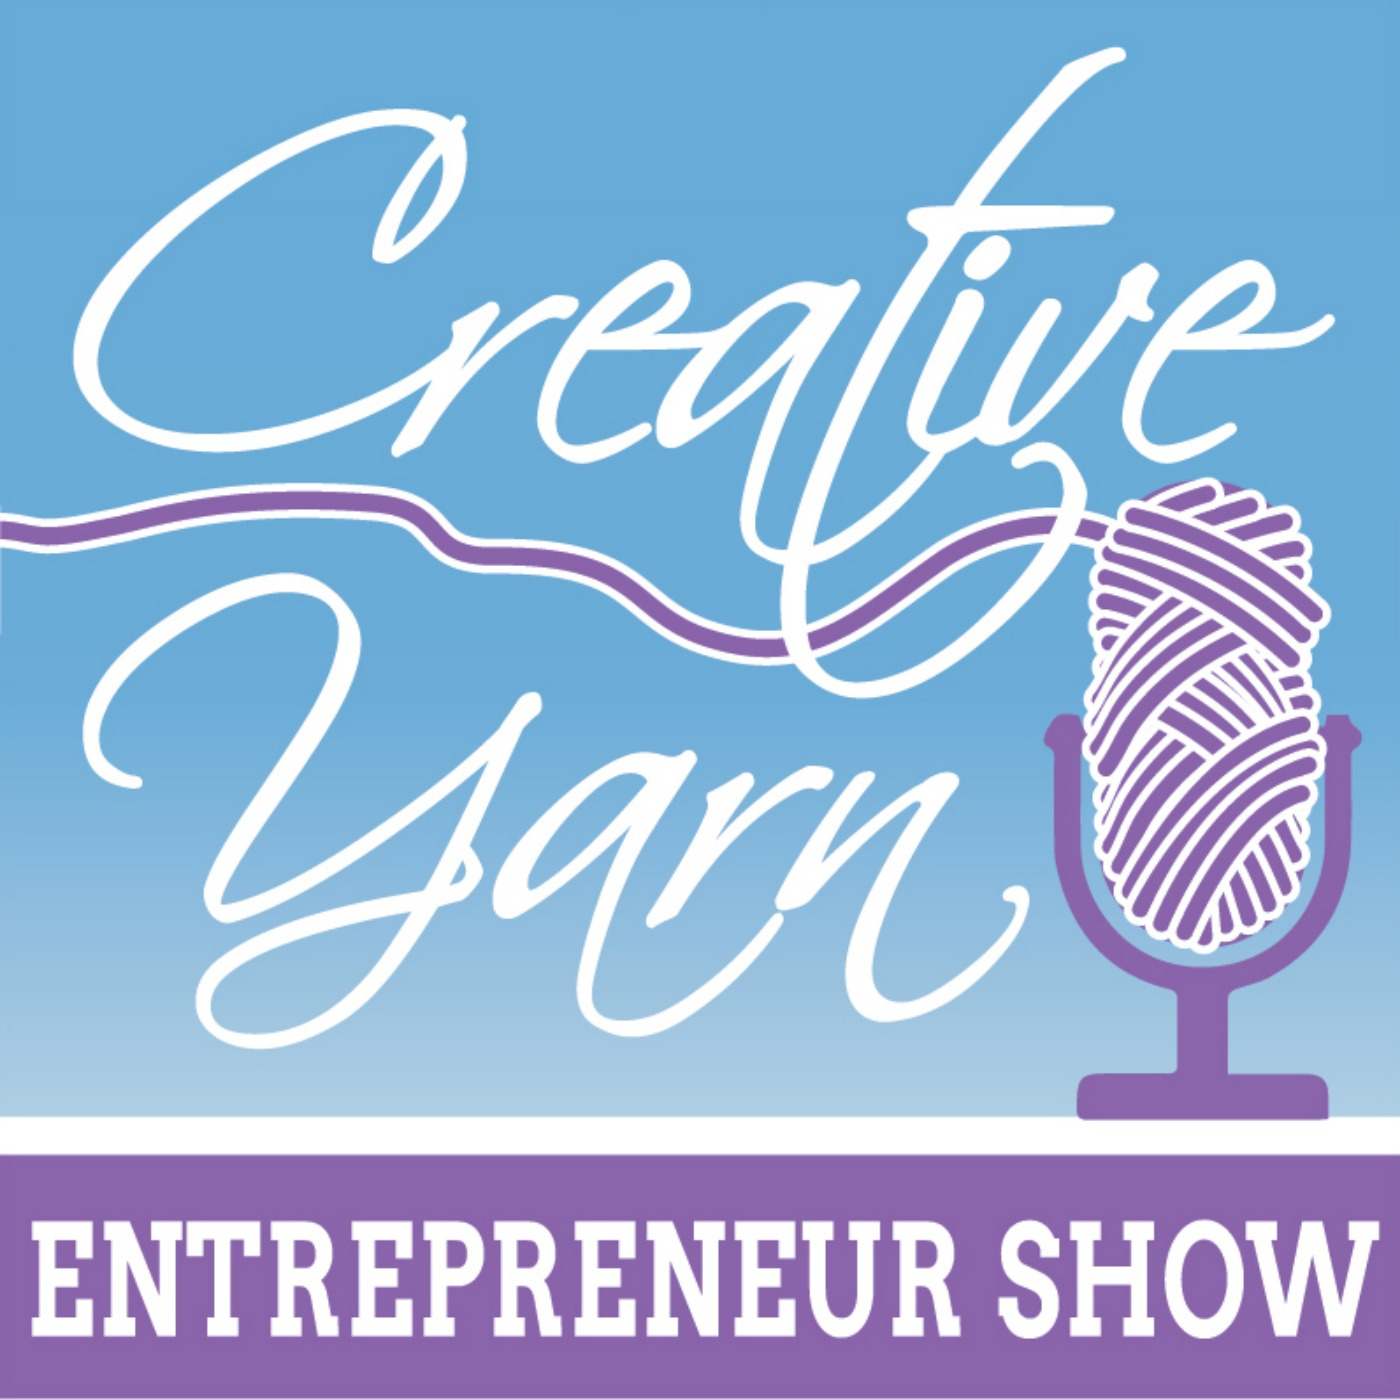 Episode 24: Using Live Facebook Chats to Connect with Your Audience with Lorene Eppolite from Cre8tion Crochet and Kathy Lashley from ELK Studio Handcrafted Crochet Designs - The Creative Yarn Entrepreneur Show